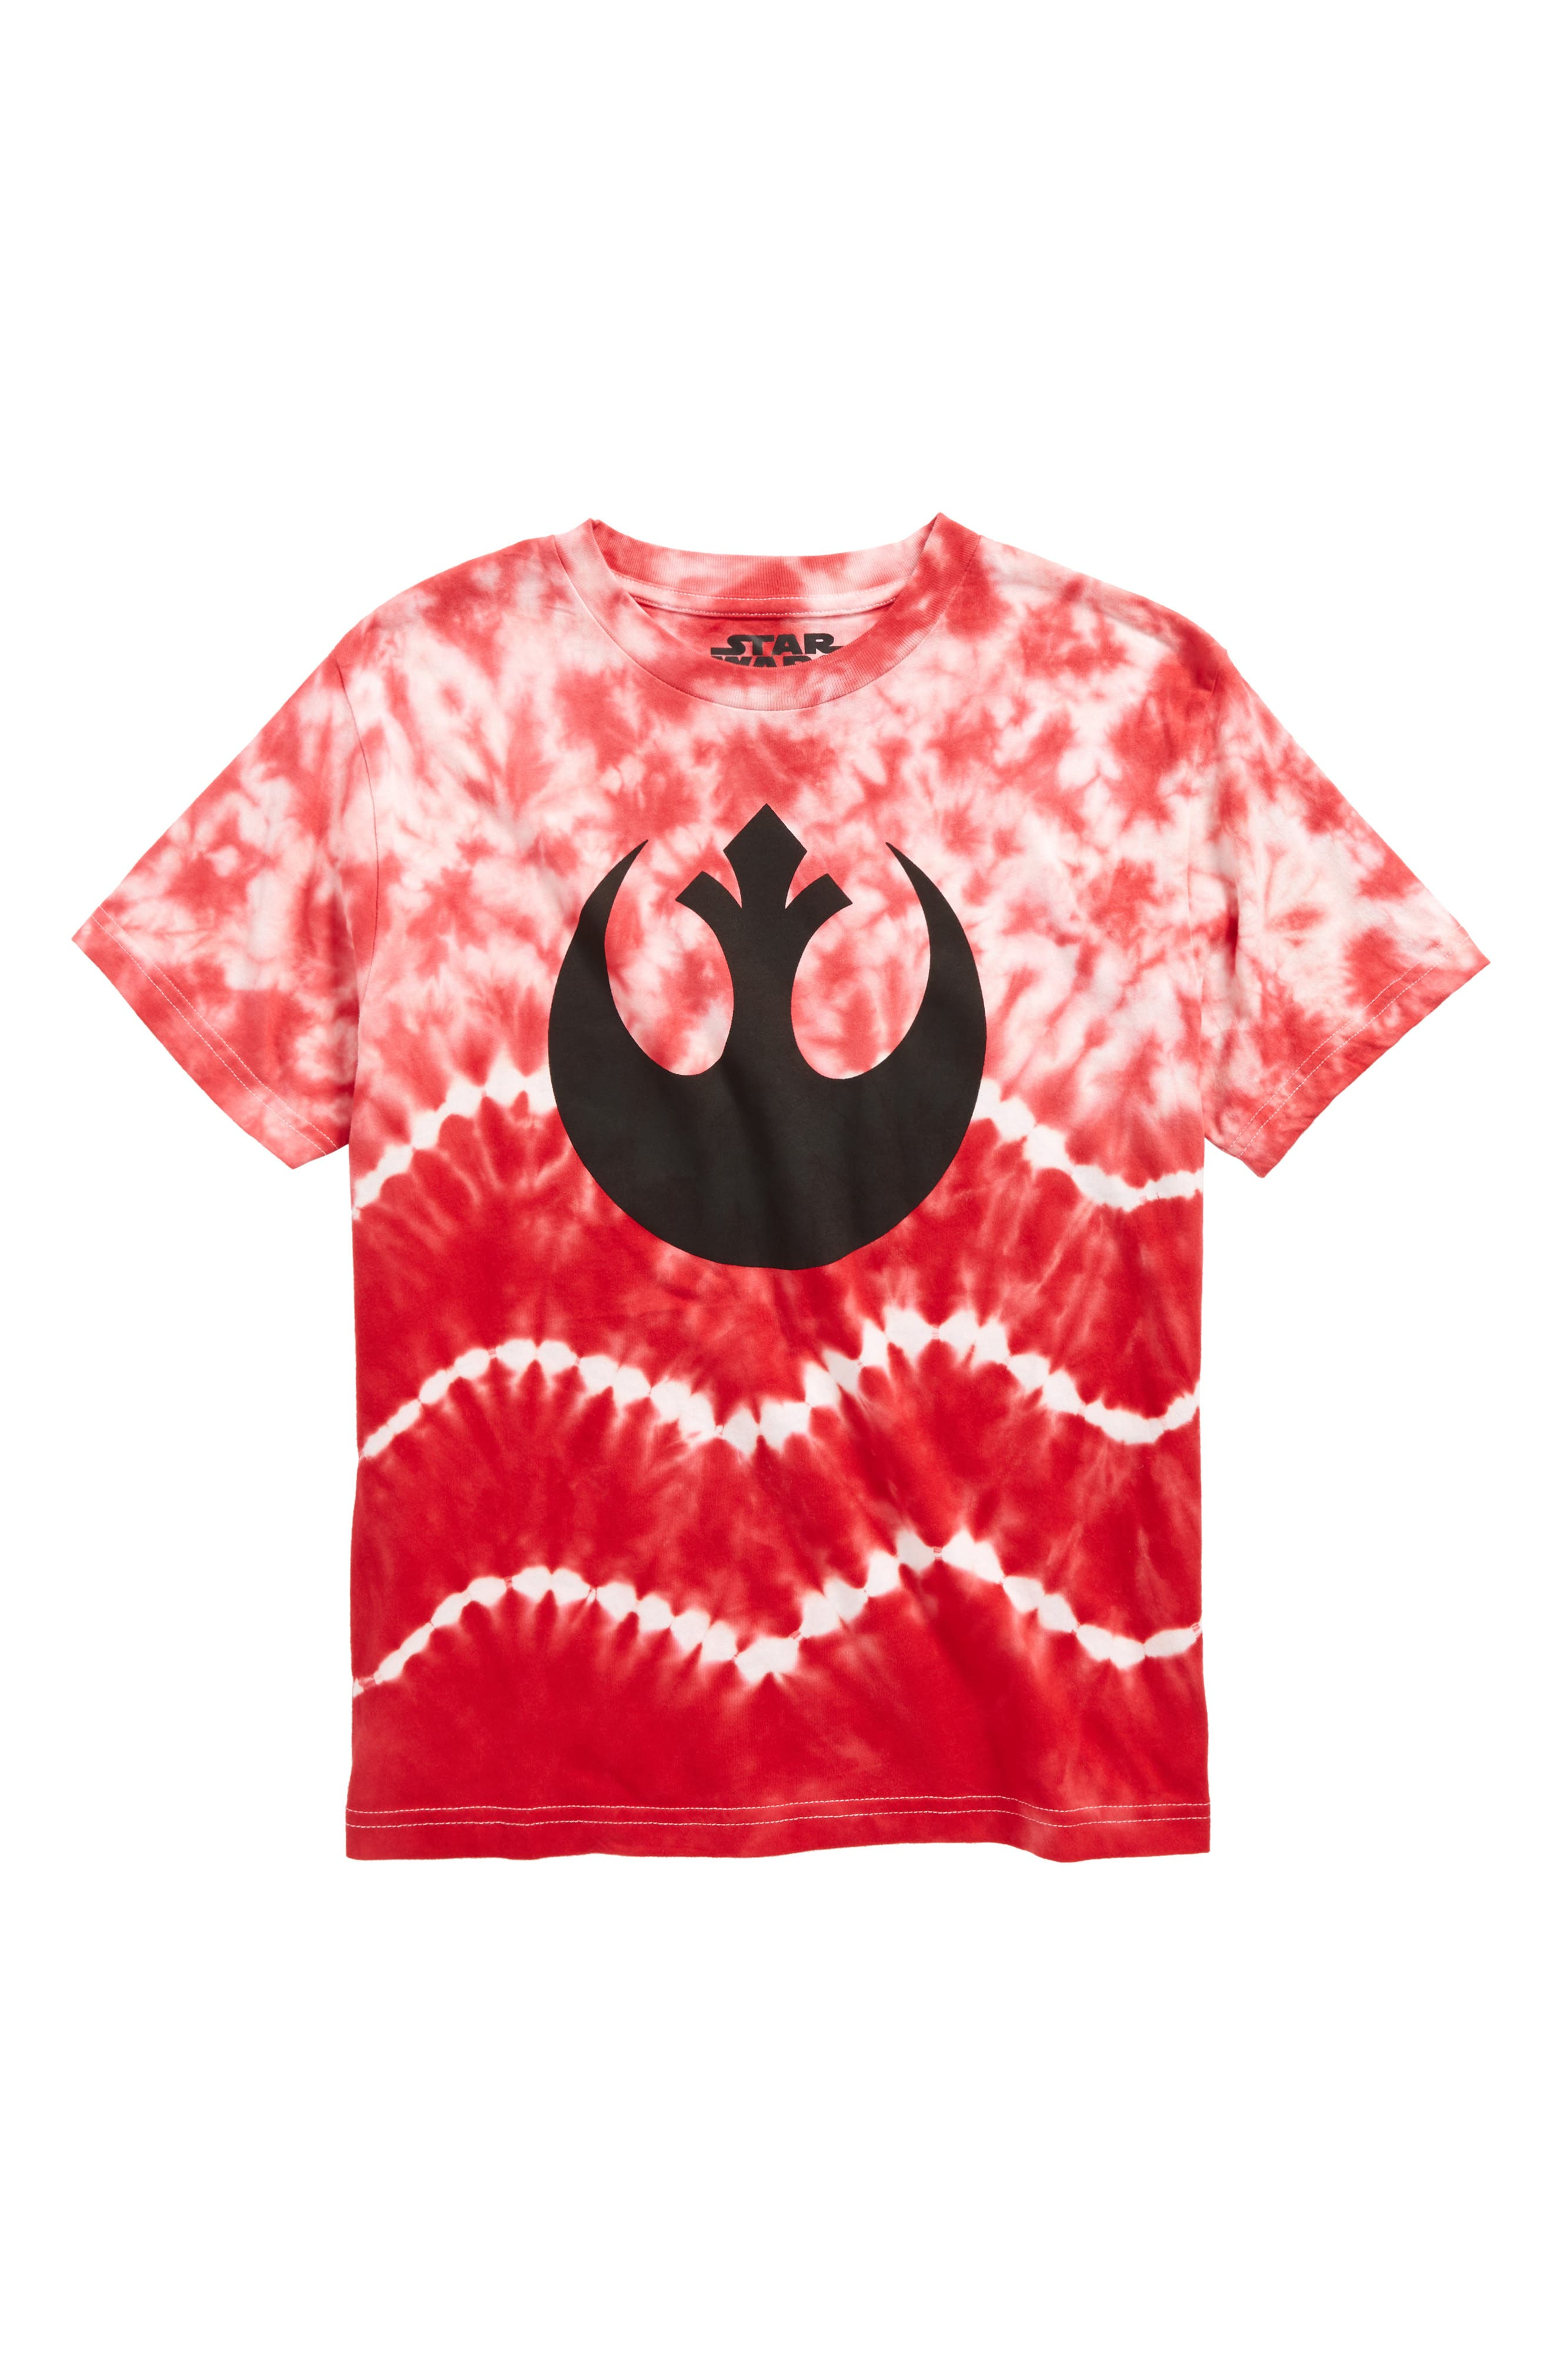 Star Wars<sup>™</sup> Rebel Graphic T-Shirt,                         Main,                         color, Red Lightning Wash